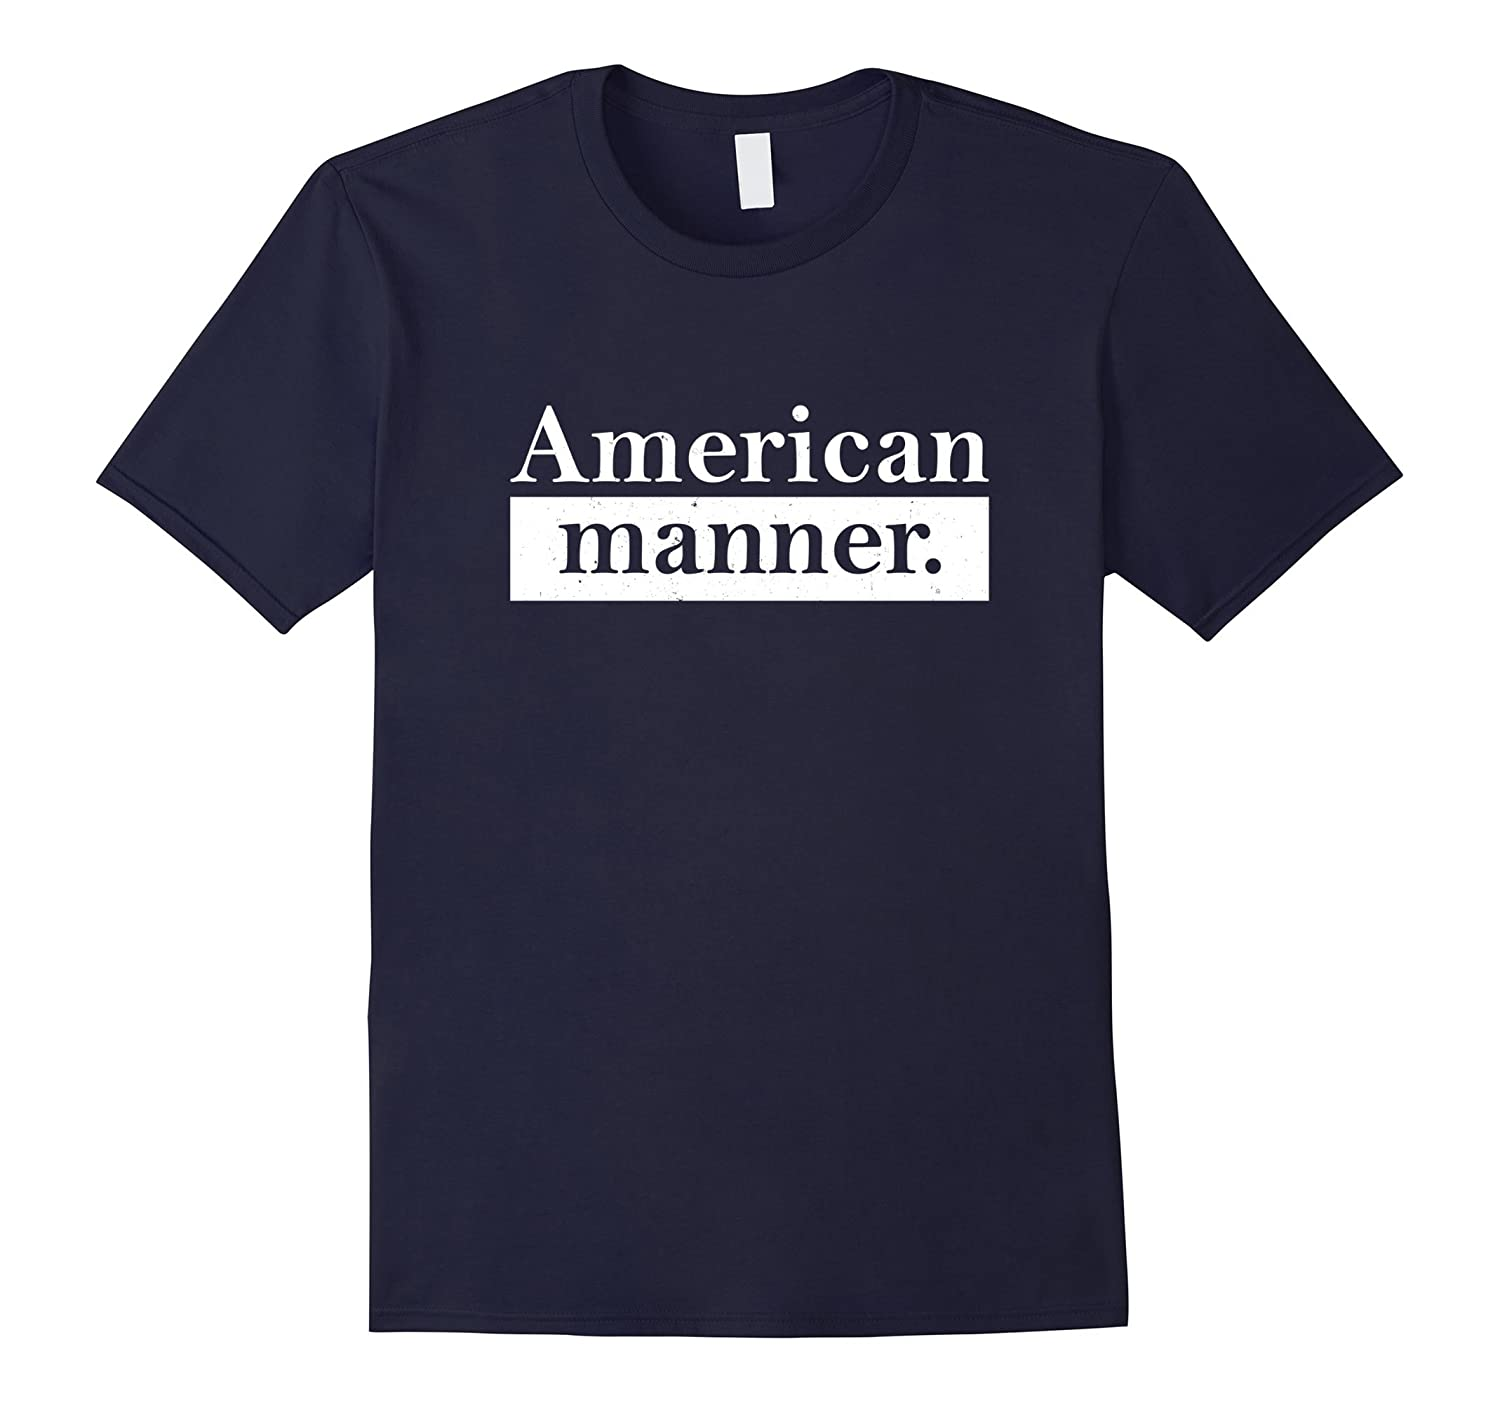 4th of July Independence Day American Manner T-Shirt-4LVS